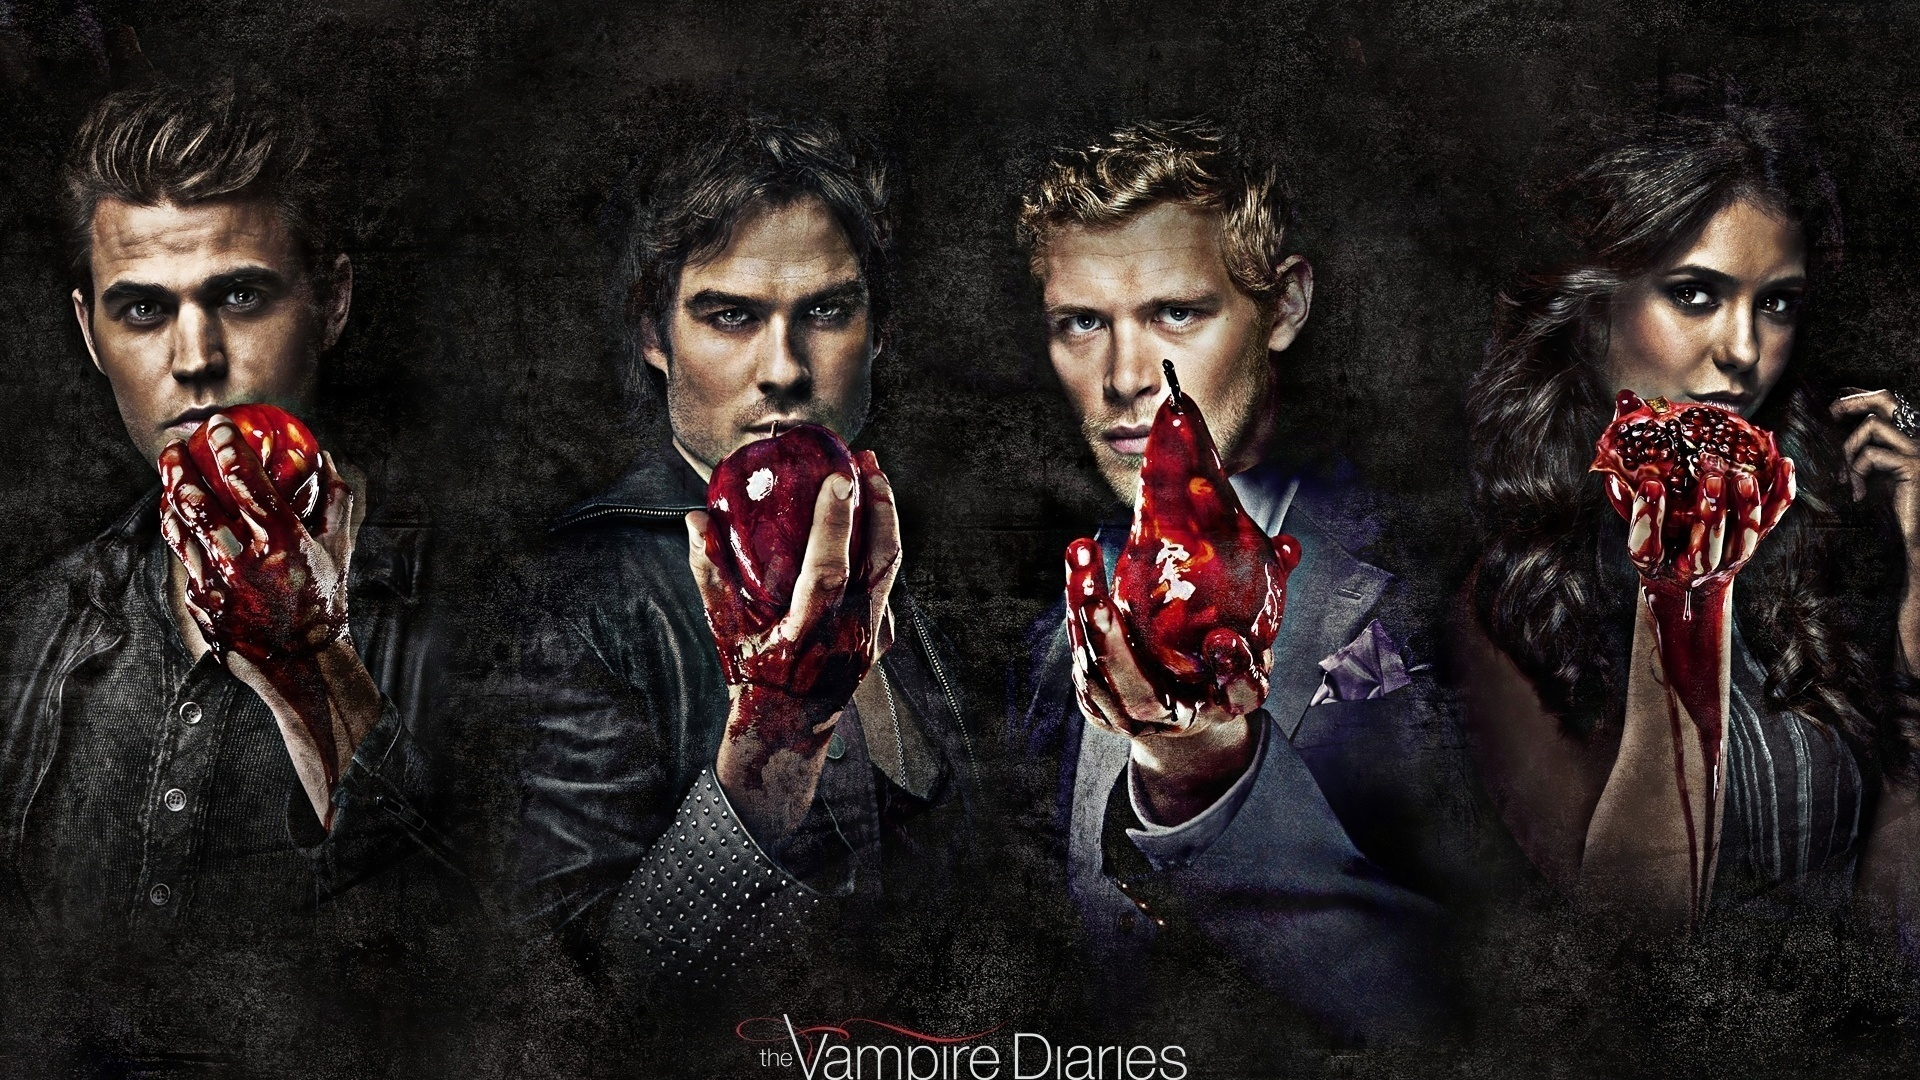 The Vampire Diaries HD Wallpaper | Background Image | 1920x1080 | ID:262189 - Wallpaper Abyss